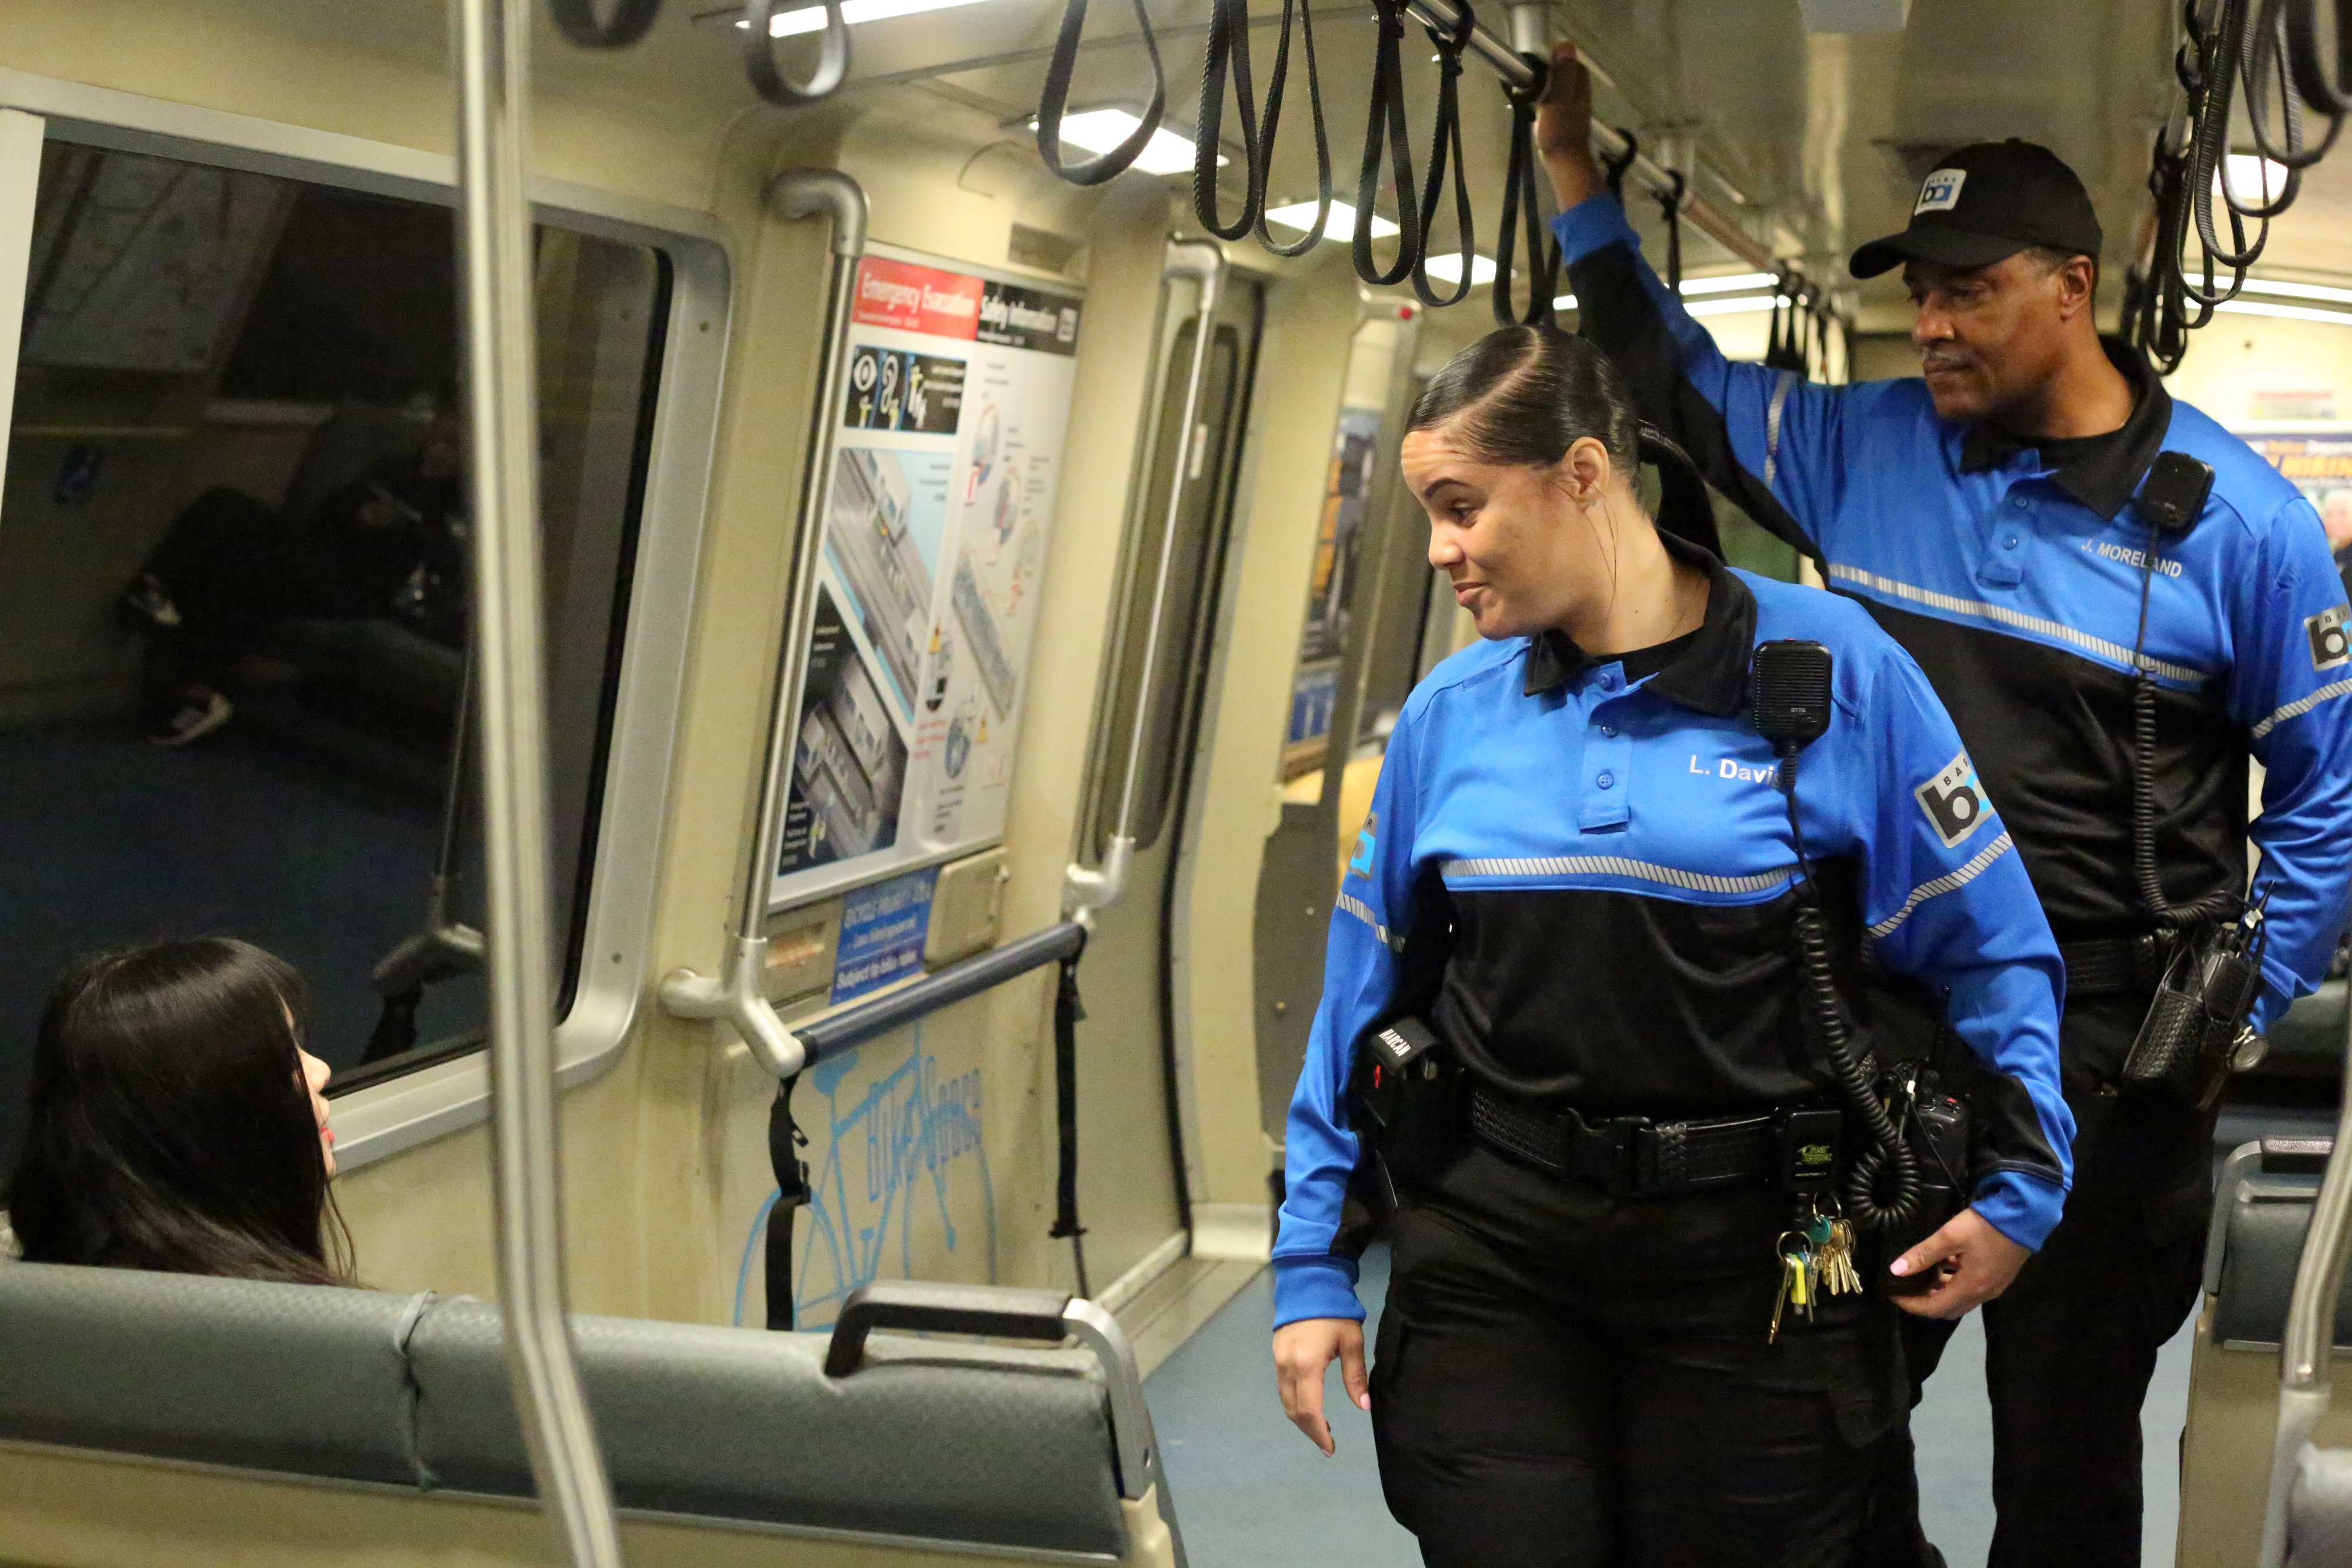 BART Ambassadors patrolling a train